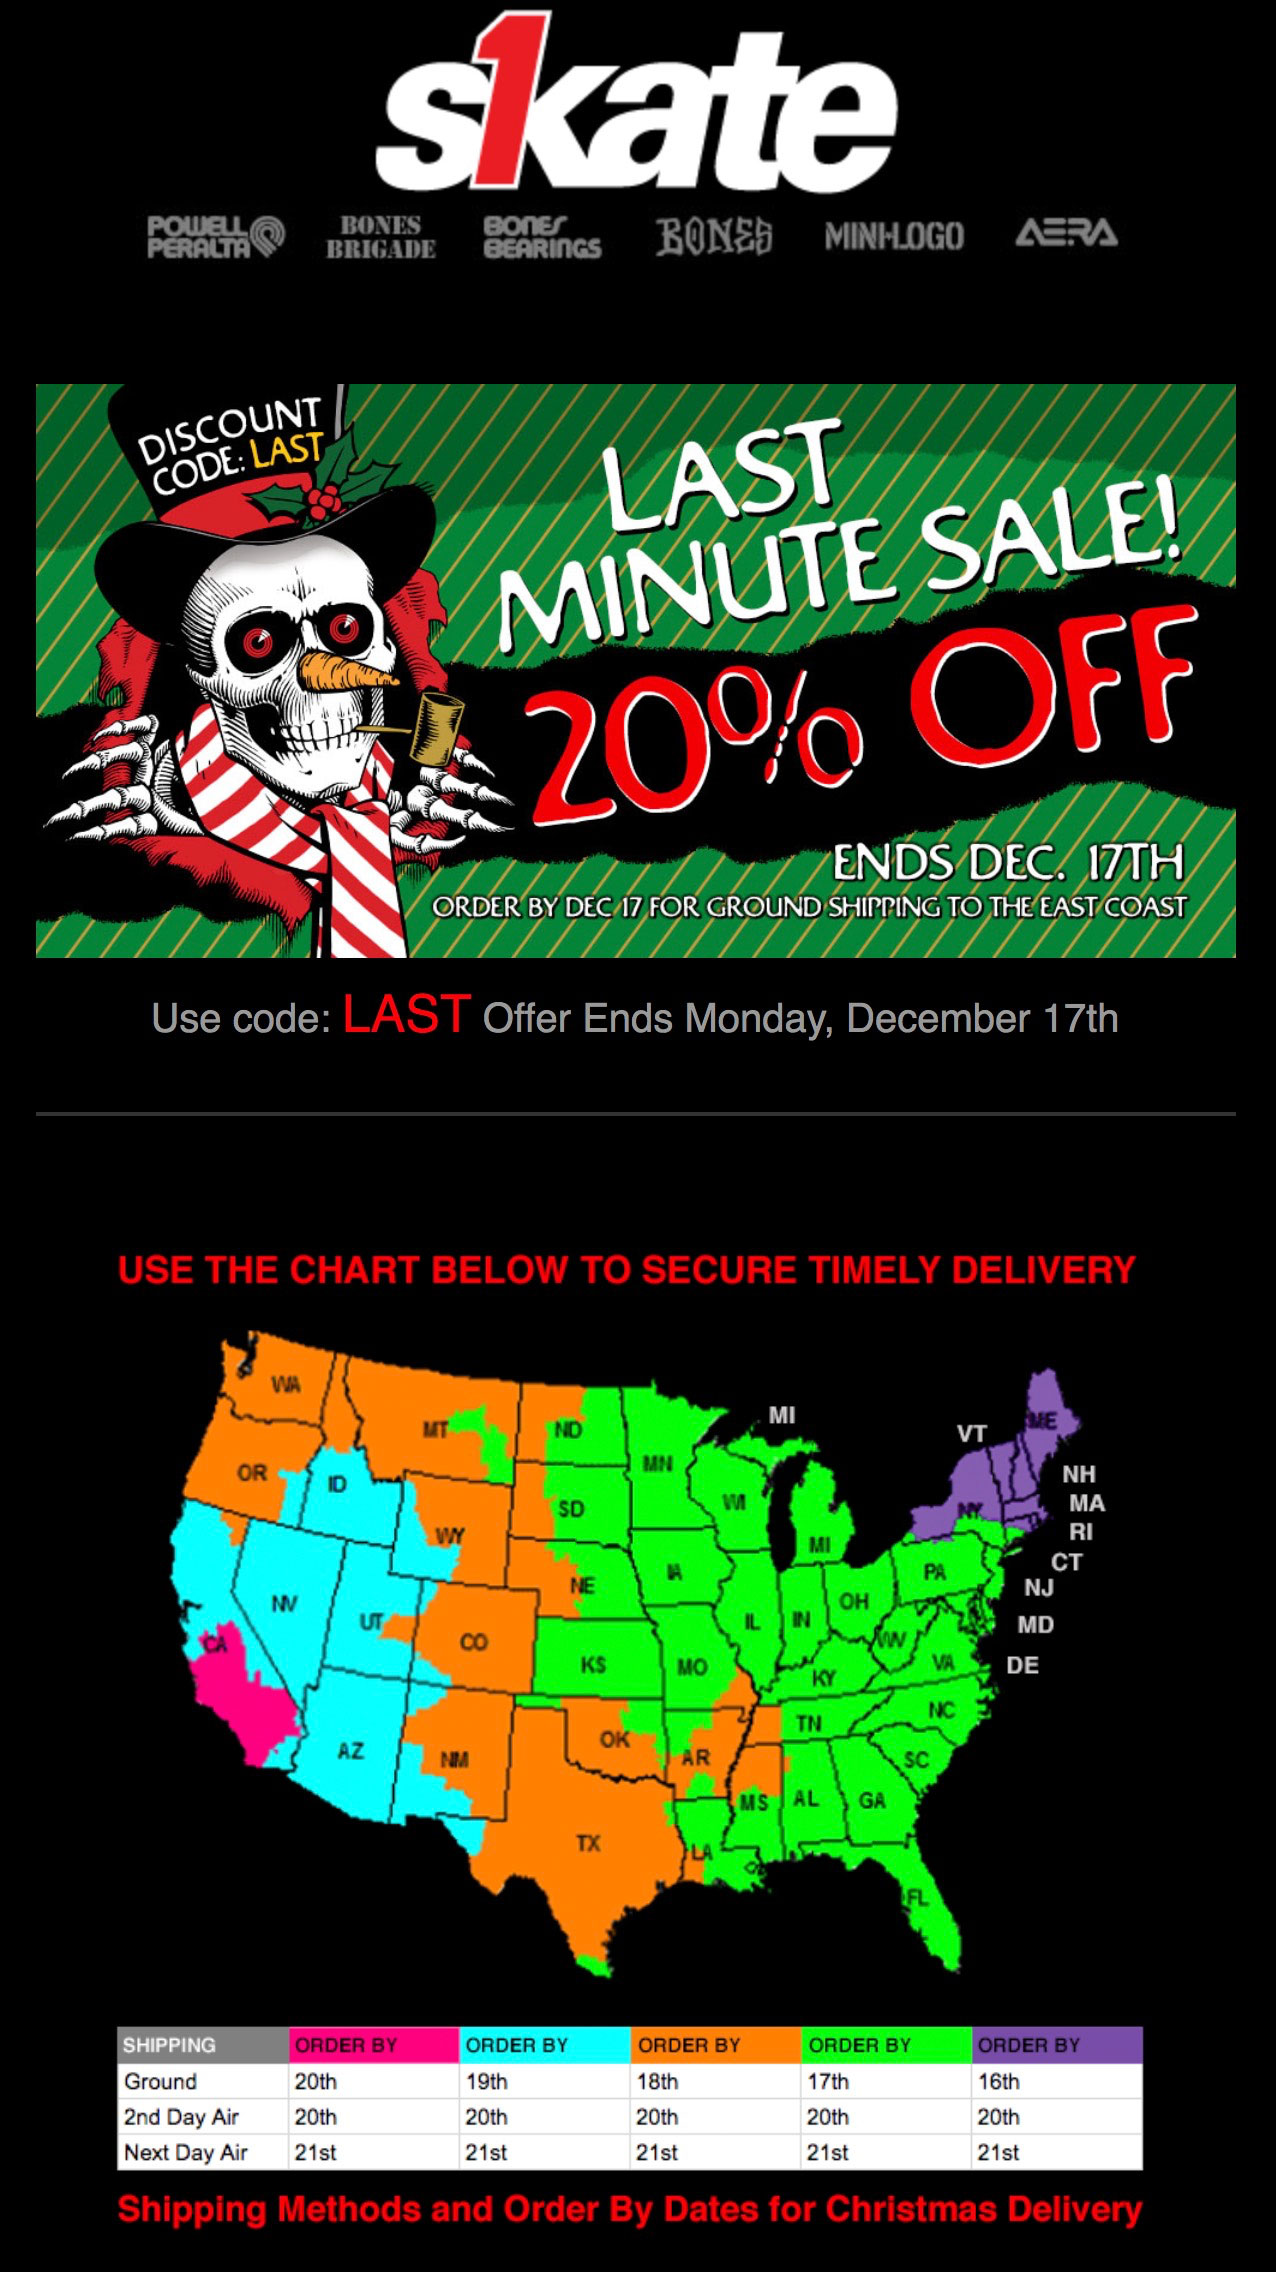 Skate1 gives a map to show holiday shipping deadlines.